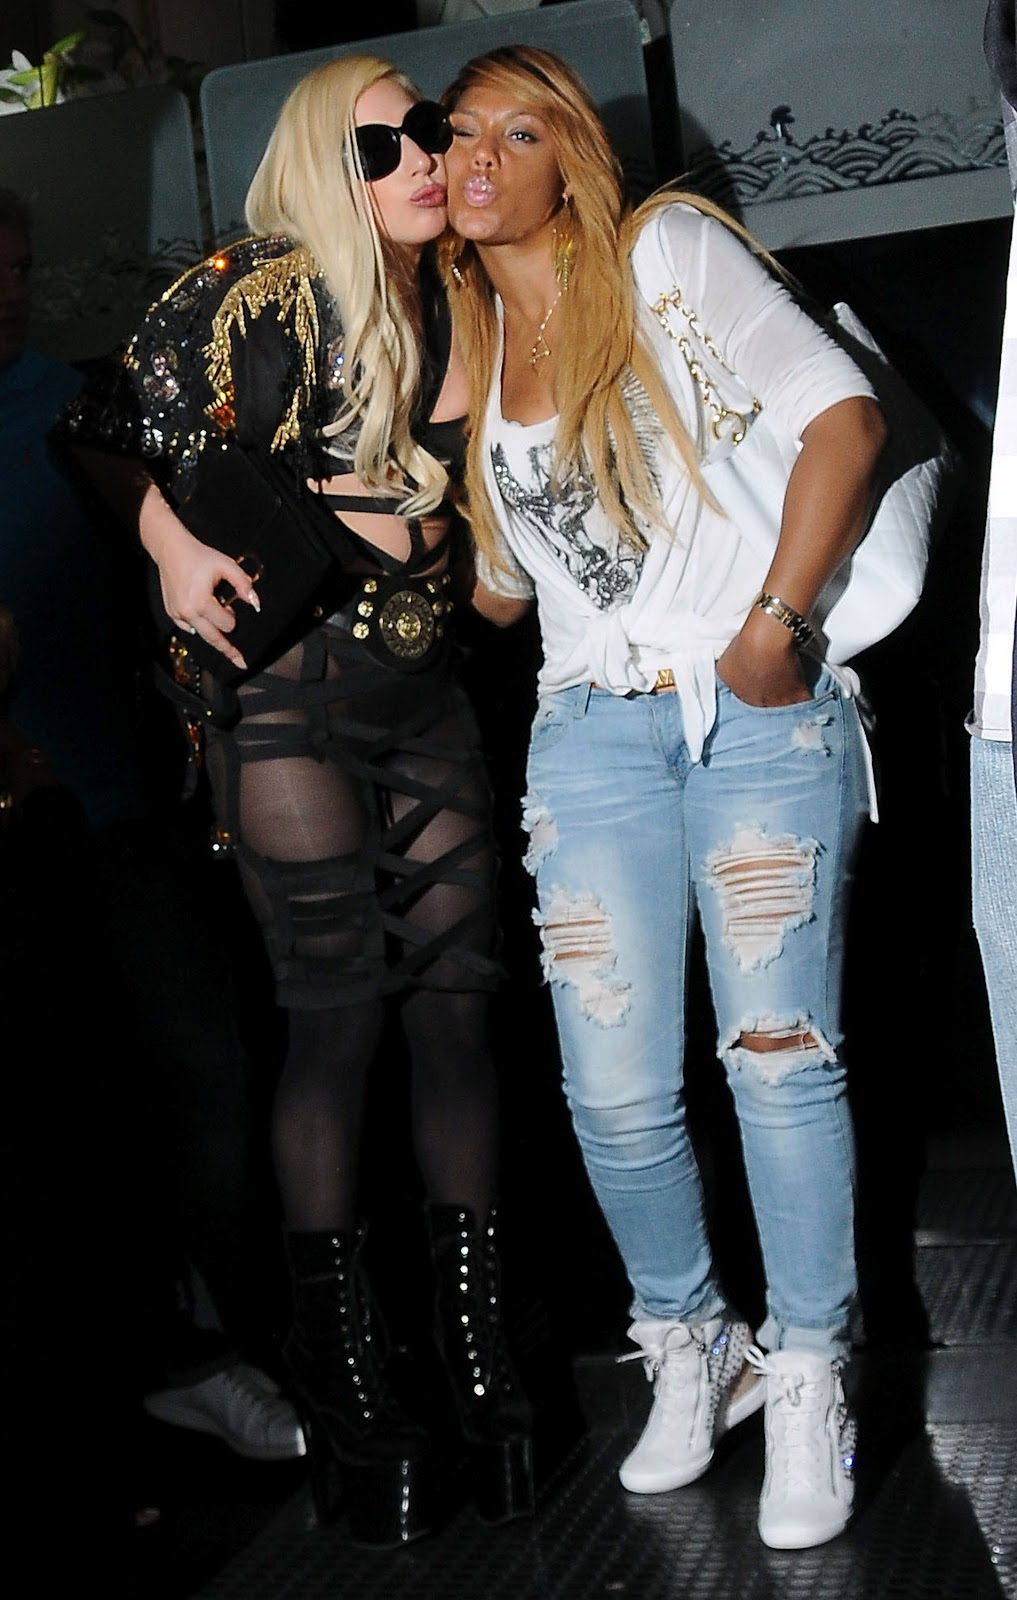 Tamar Braxton and Lady Gaga